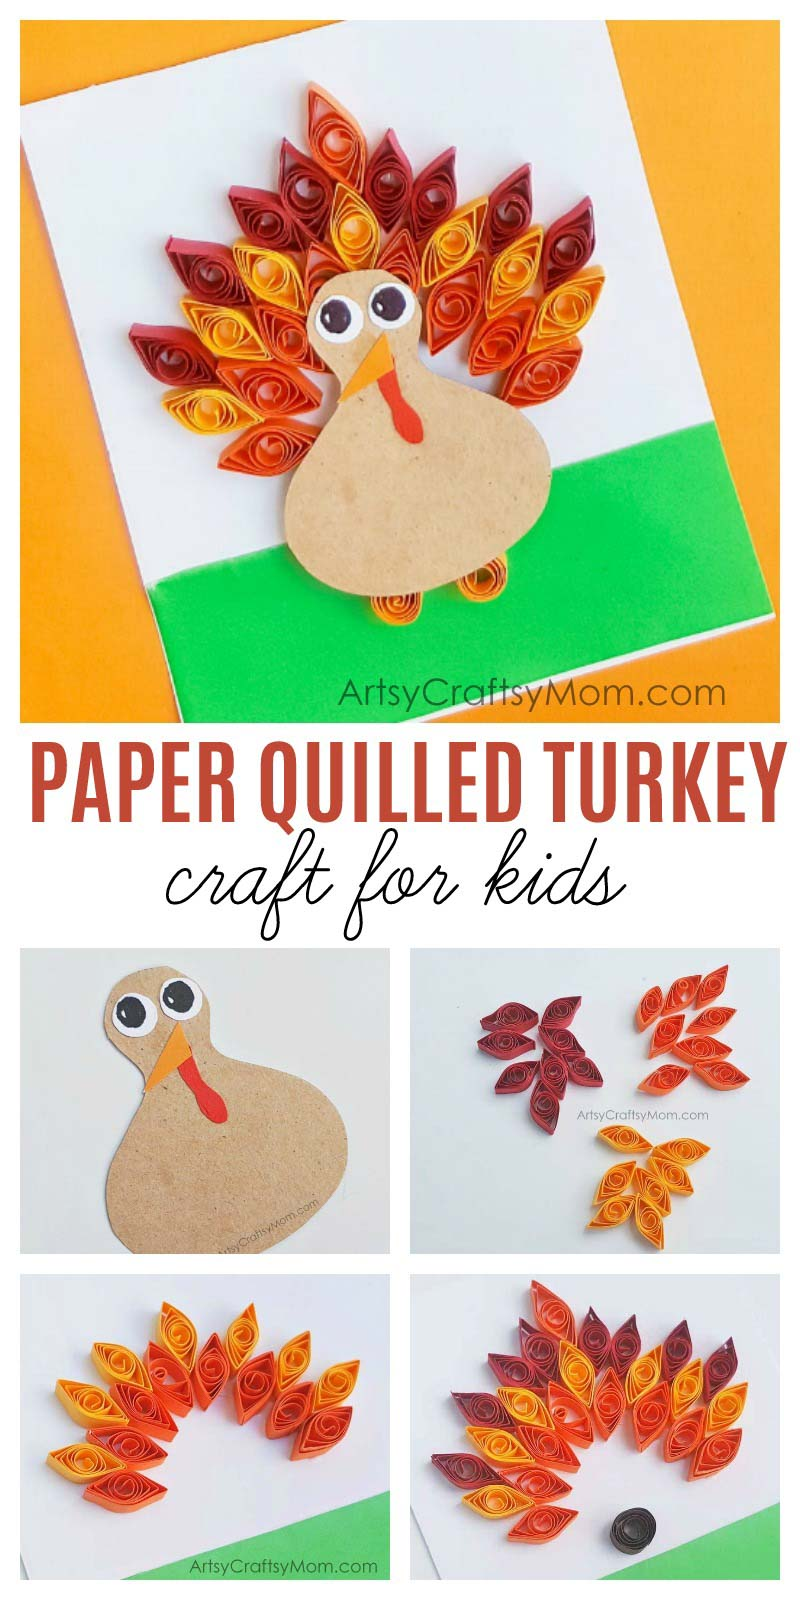 DIY Paper Quilled Turkey Craft is one of the cutest Thanksgiving Craft projects. Perfect as an Autumn / Fall Card or as a name card for your Thanksgiving dinner